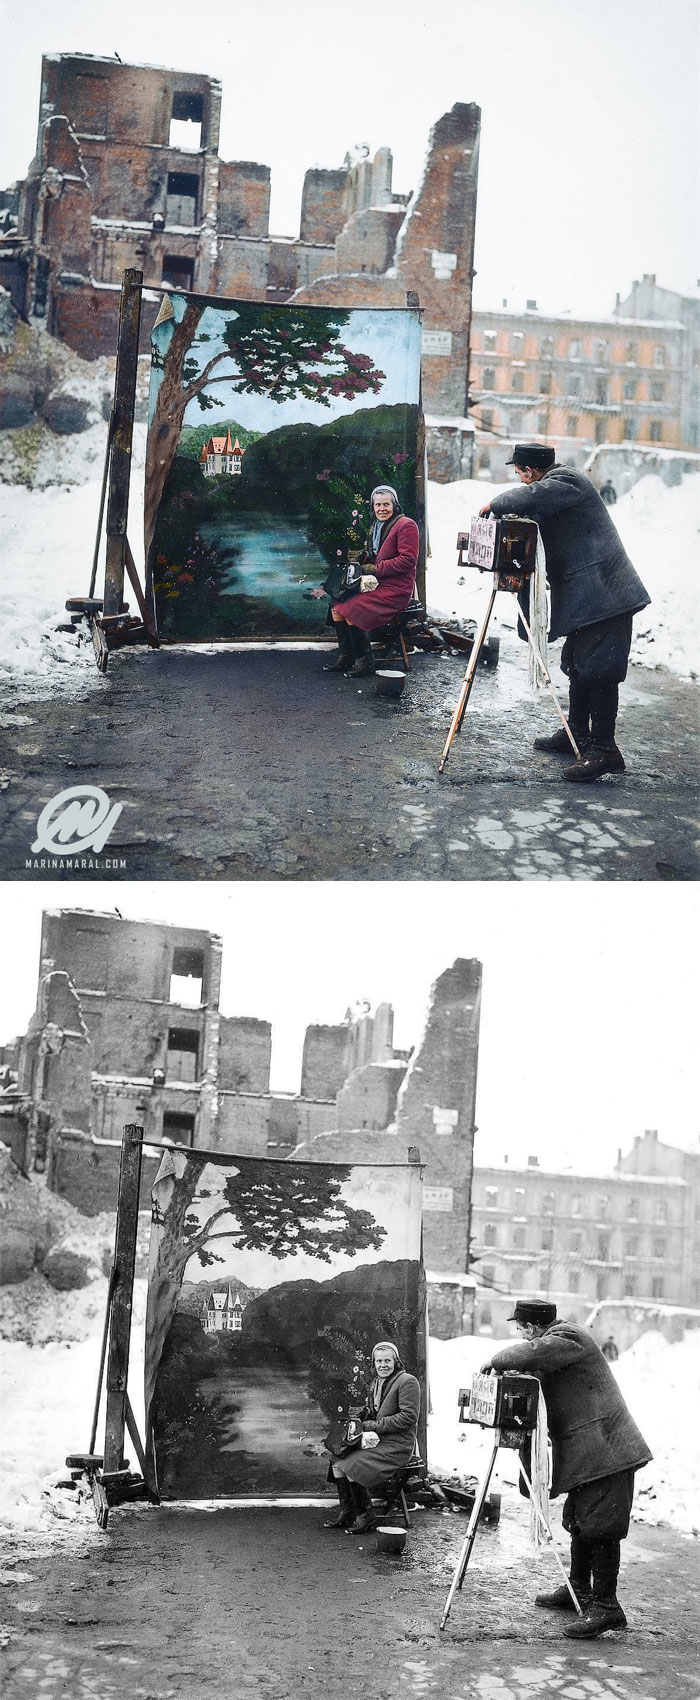 A Photographer Uses His Own Backdrop To Mask Poland's World War II Ruins While Shooting A Portrait In Warsaw In November 1946